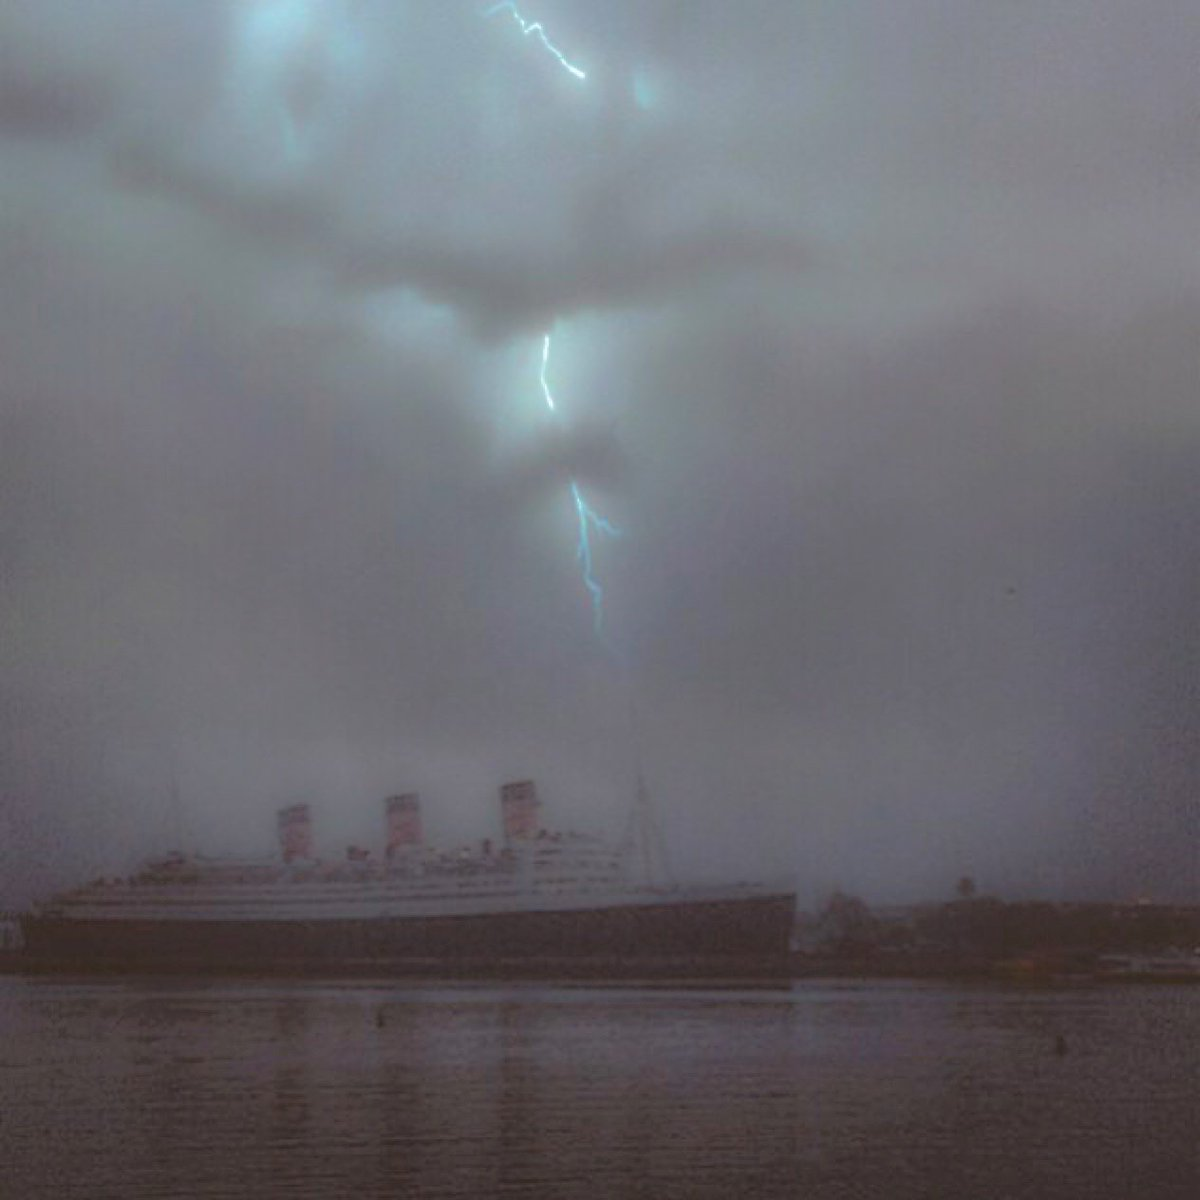 We had to share this incredible shot of the lightning storm above @TheQueenMary this morning (IG user veezee_p) https://t.co/v7fj8AM5Ar